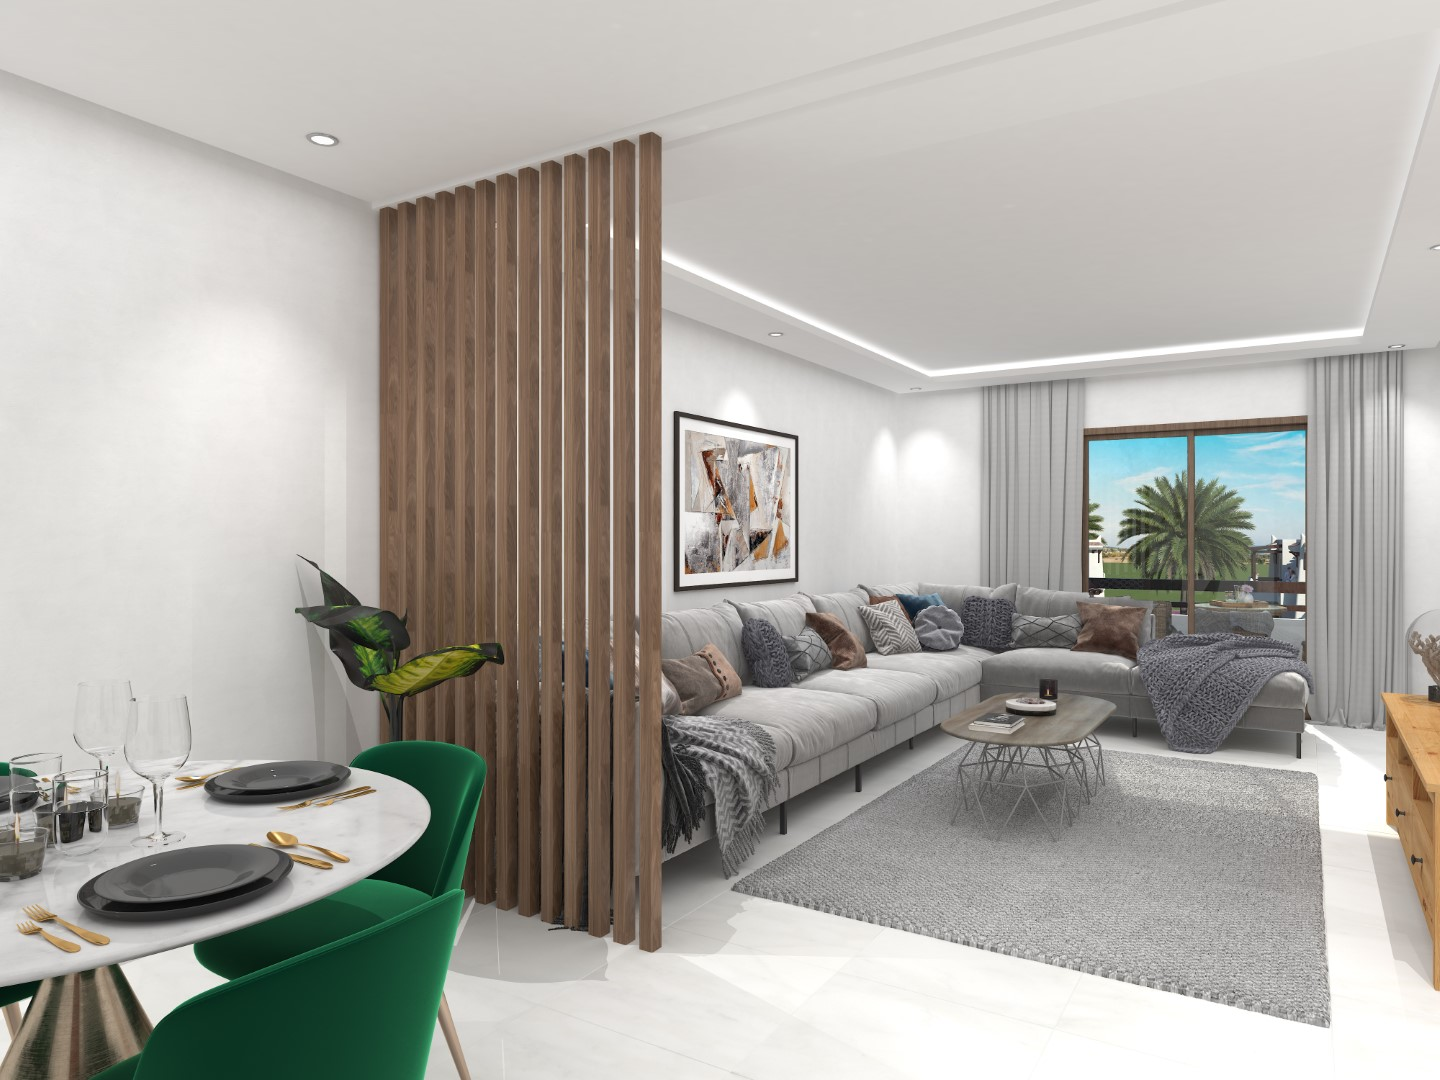 Palmeraie immobilier Image 6